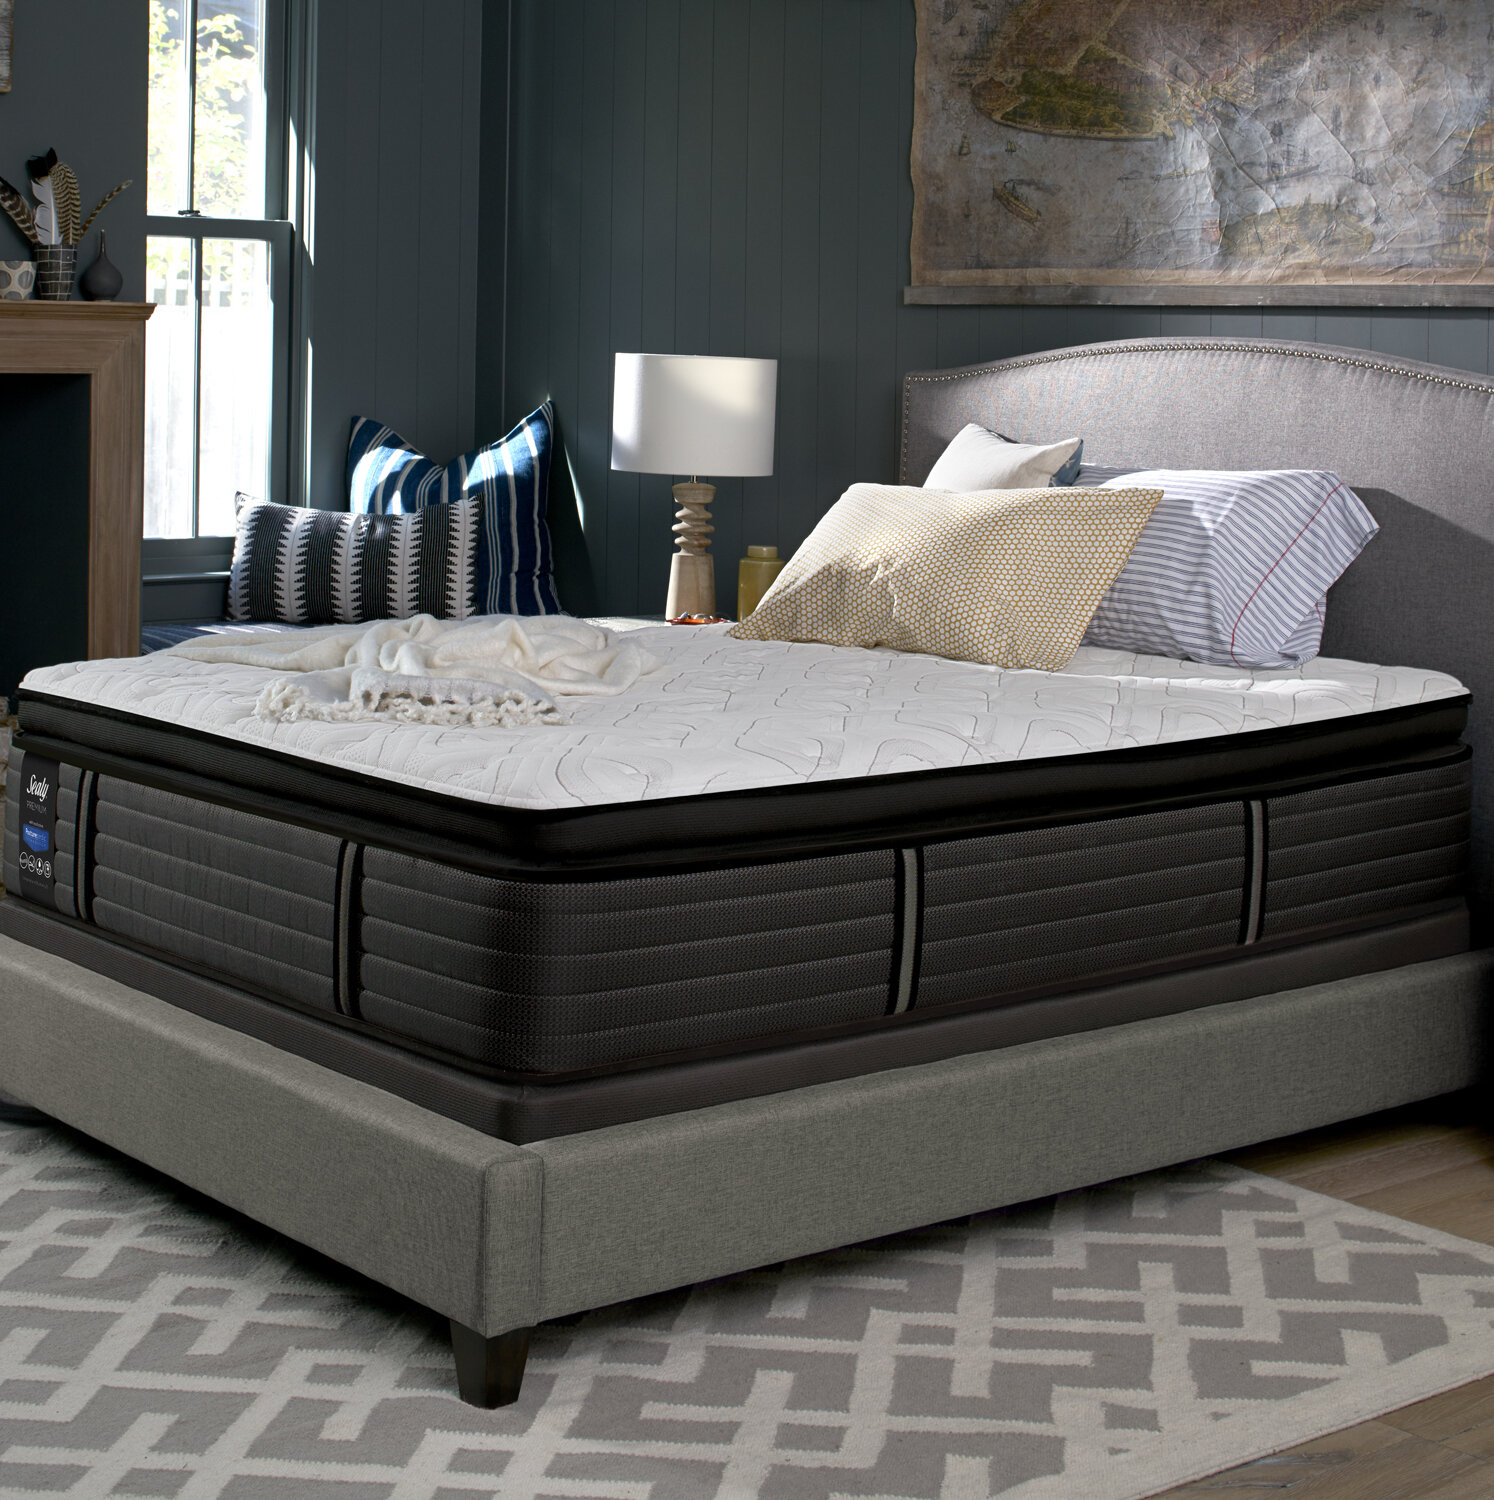 sleep silver canada topper by pillow davidson mattresses beautyrest simmons top country mattress